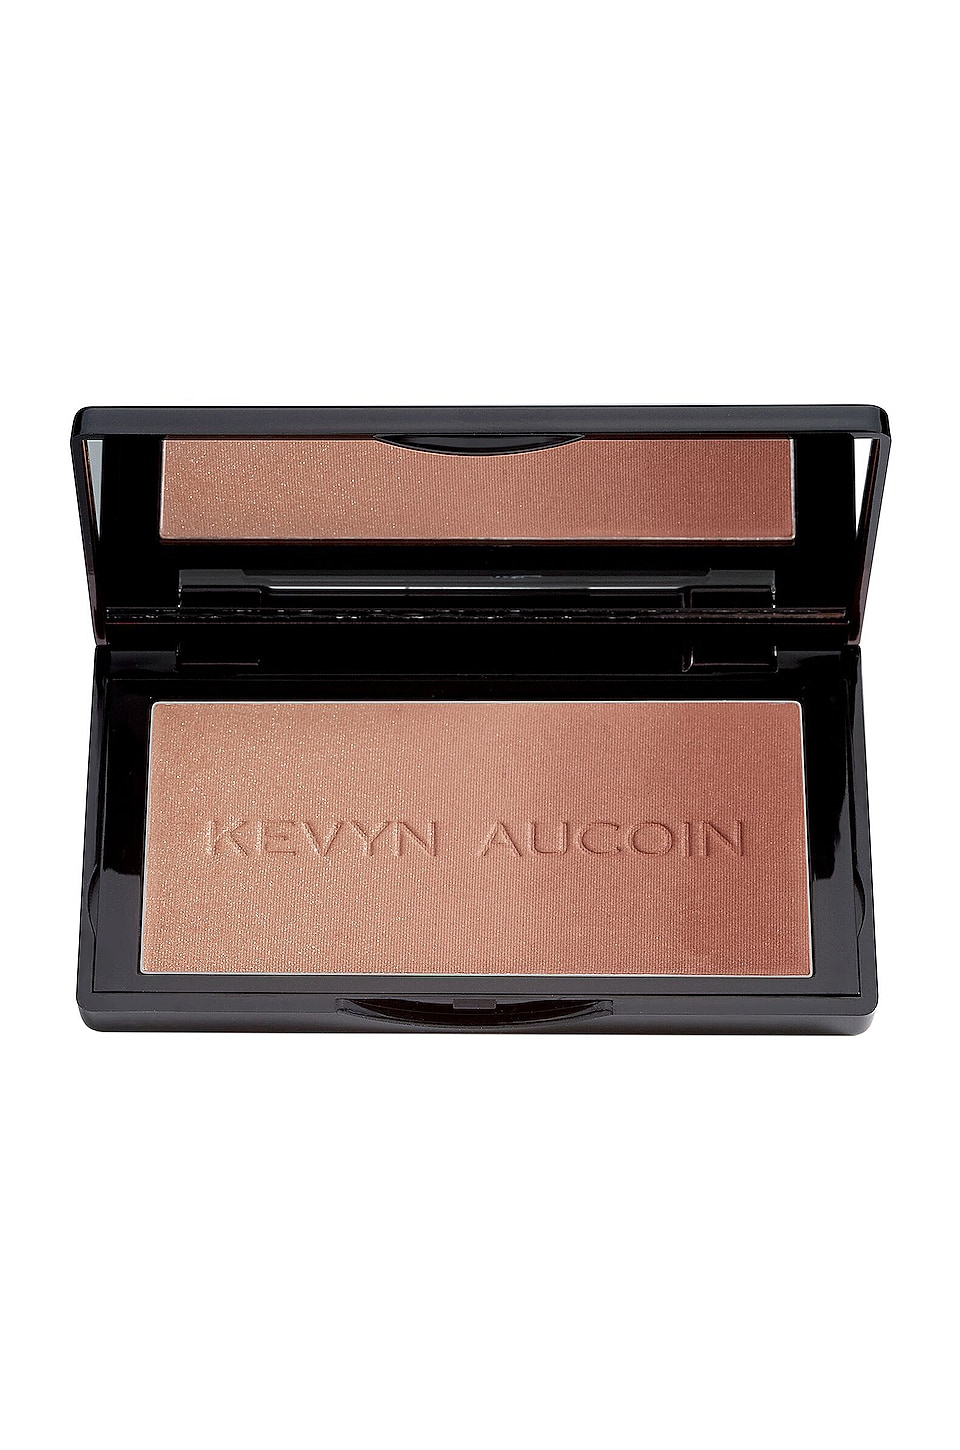 Kevyn Aucoin The Neo Bronzer in Sunset Deep